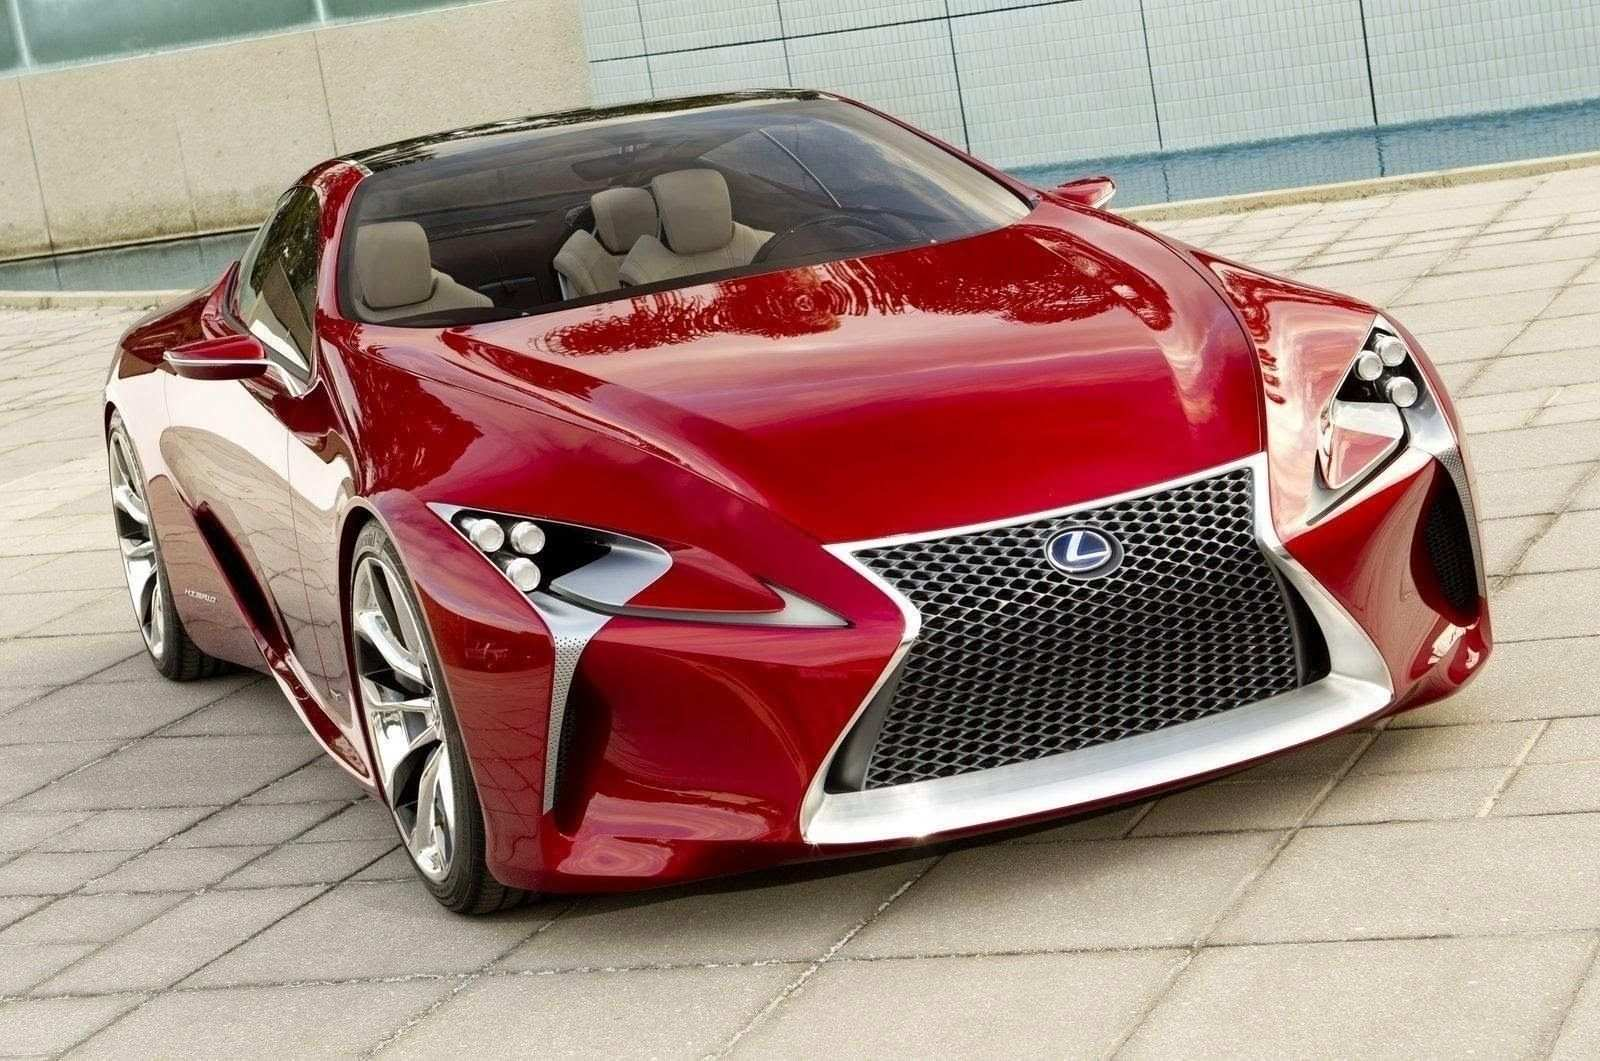 18 Best Review 2019 Lexus Convertible Exterior with 2019 Lexus Convertible